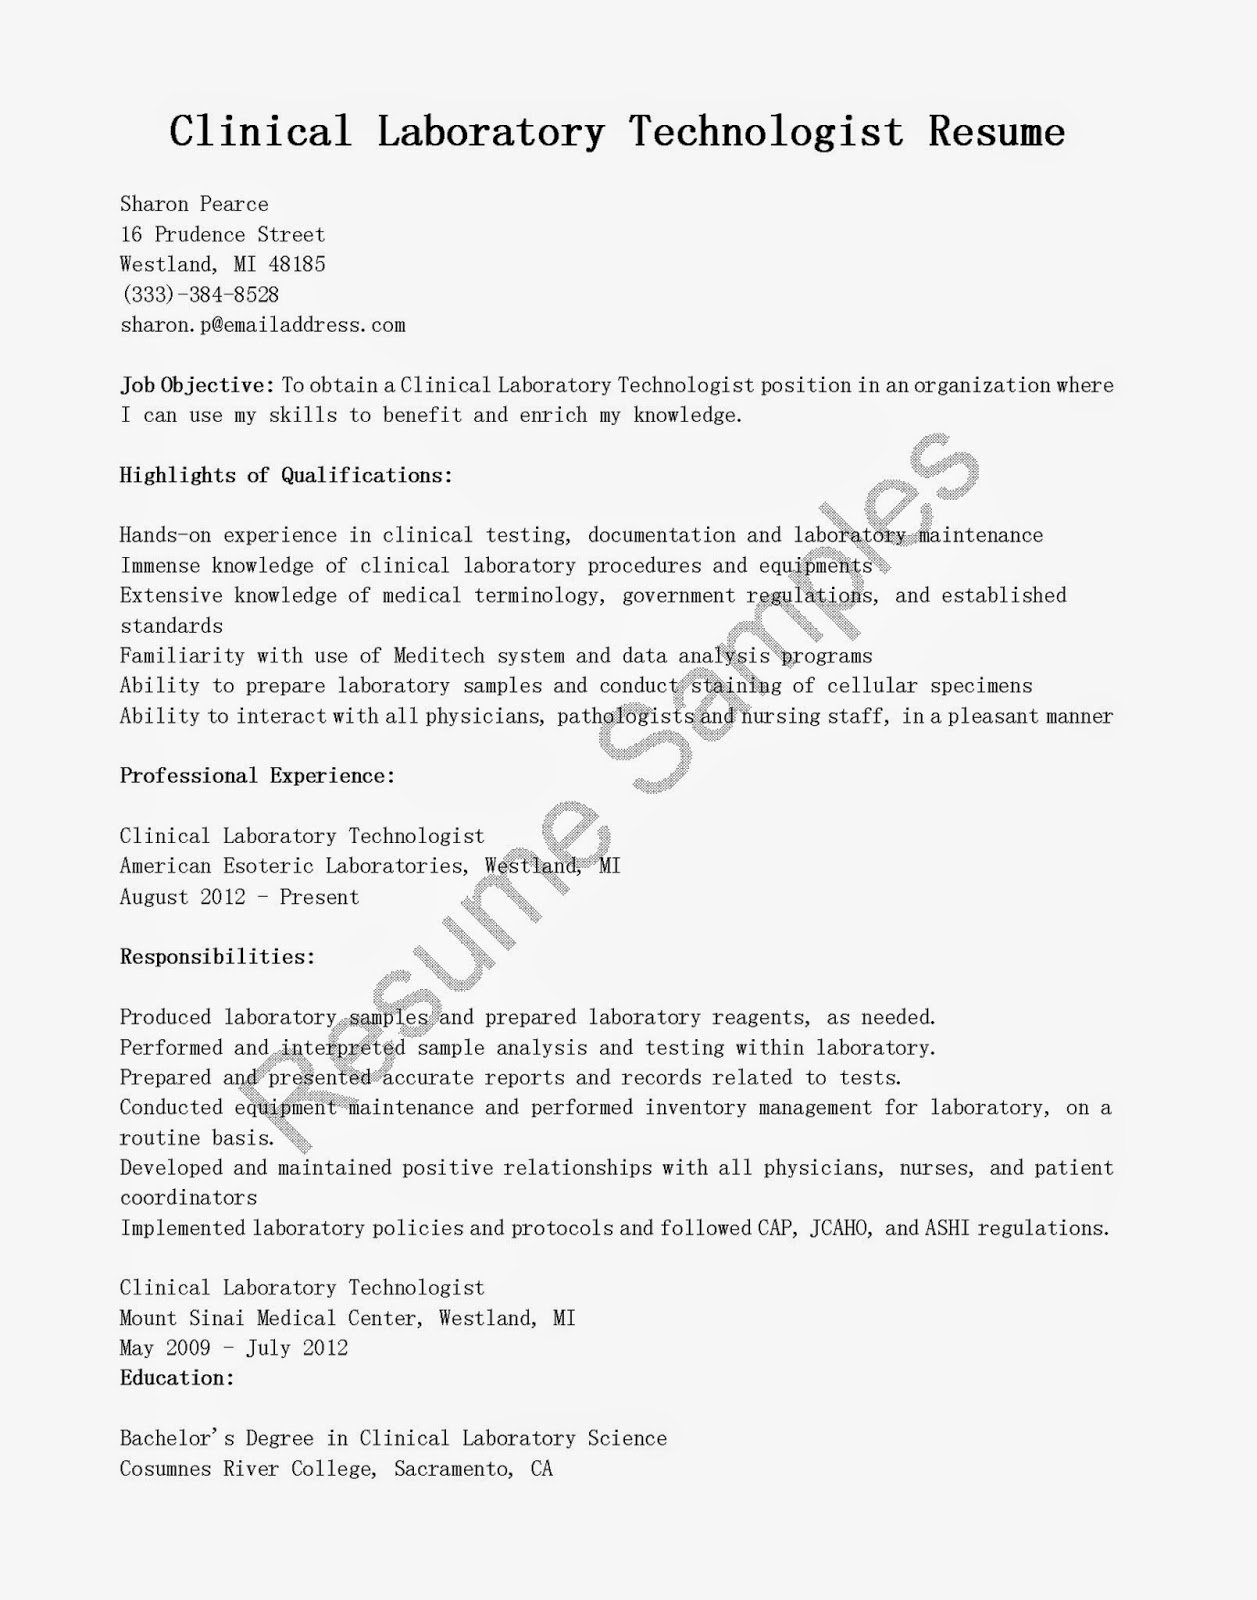 Resume Samples Clinical Laboratory Technologist Resume Sample